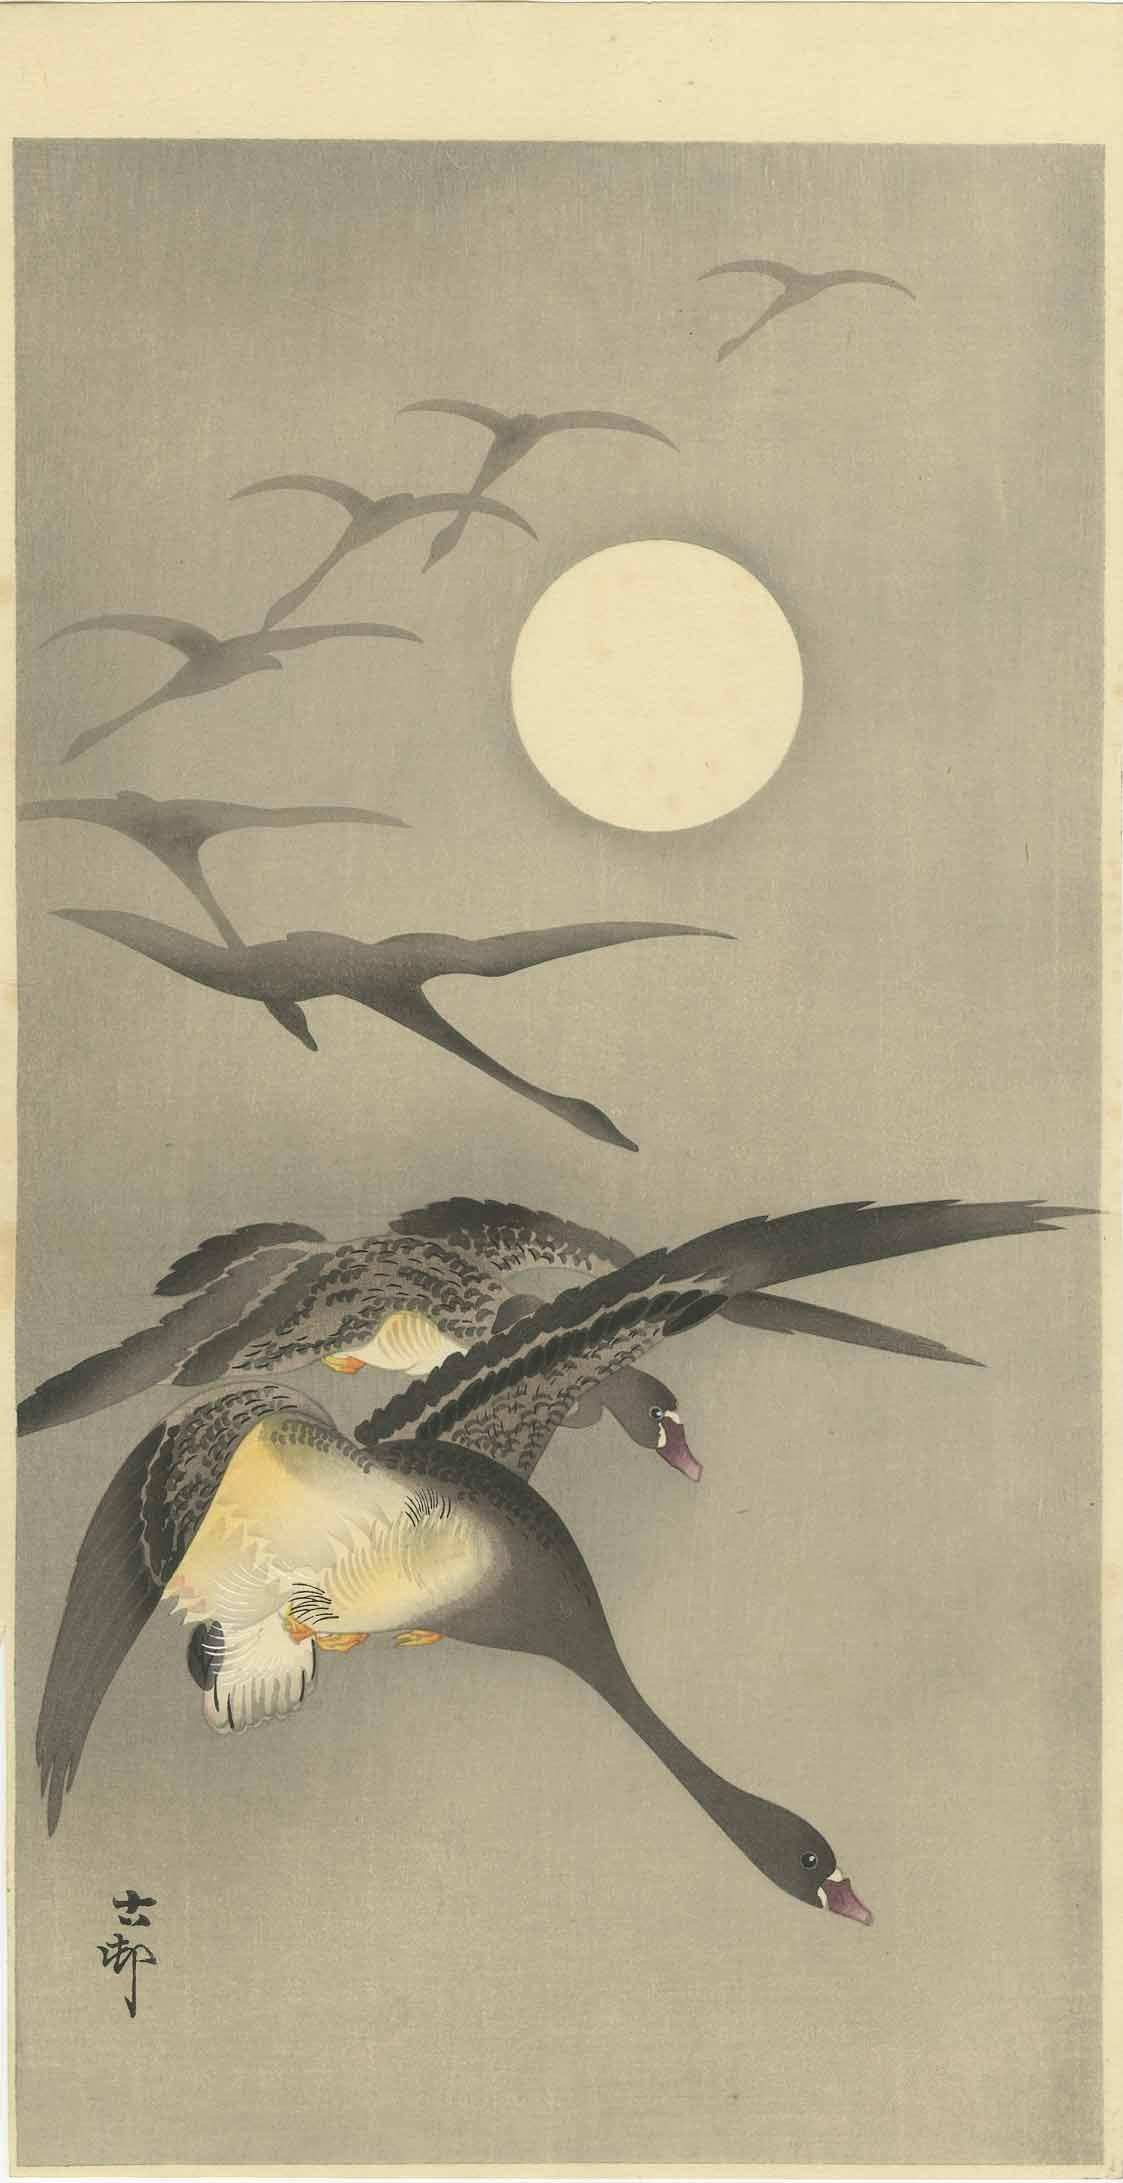 Koson Ohara: Geese in Flight and Moon 1920s Woodblock